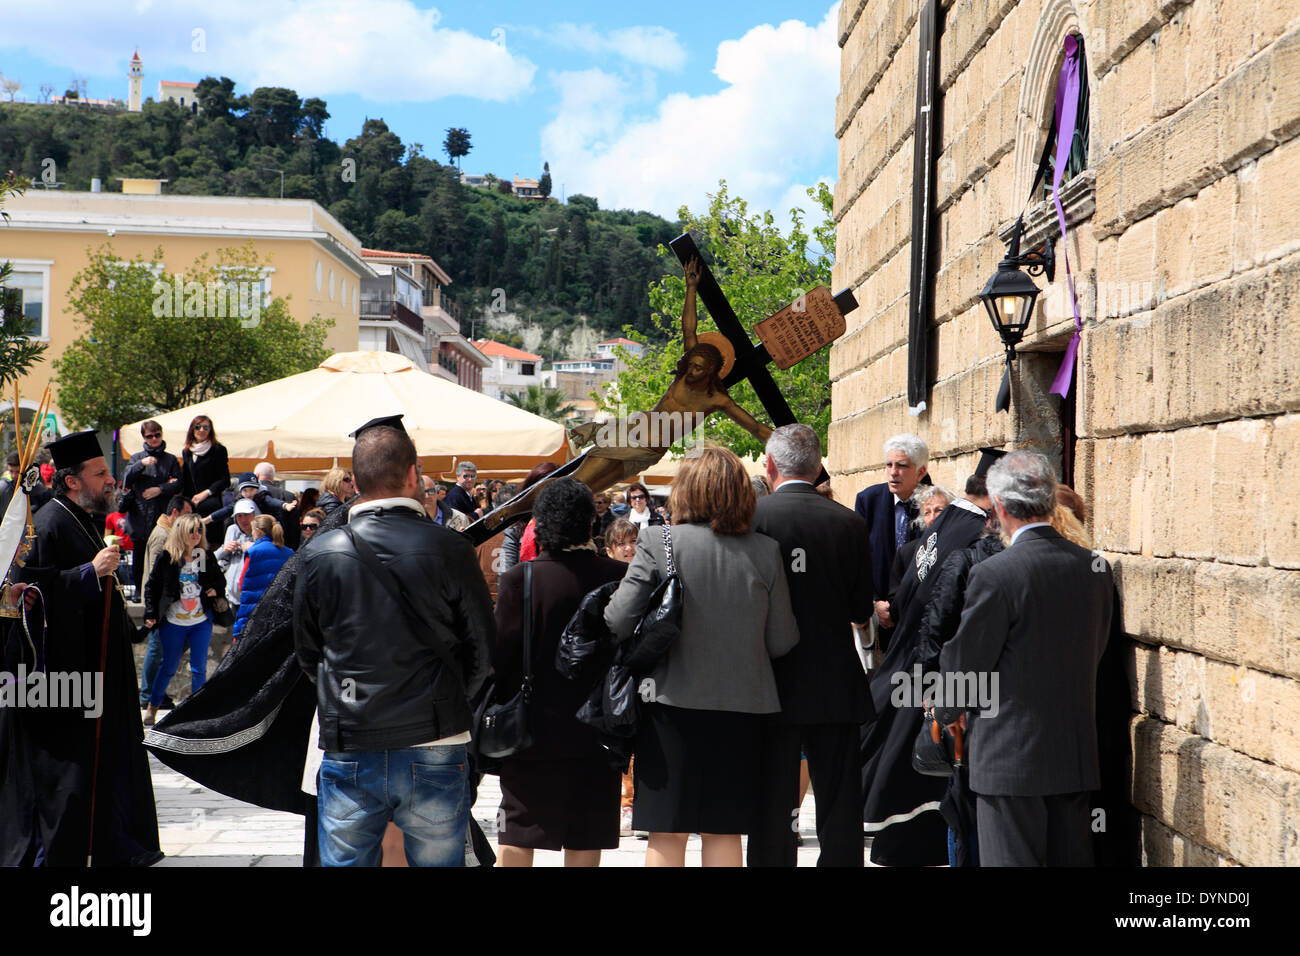 greece ionian zakynthos island easter good friday religious procession - Stock Image